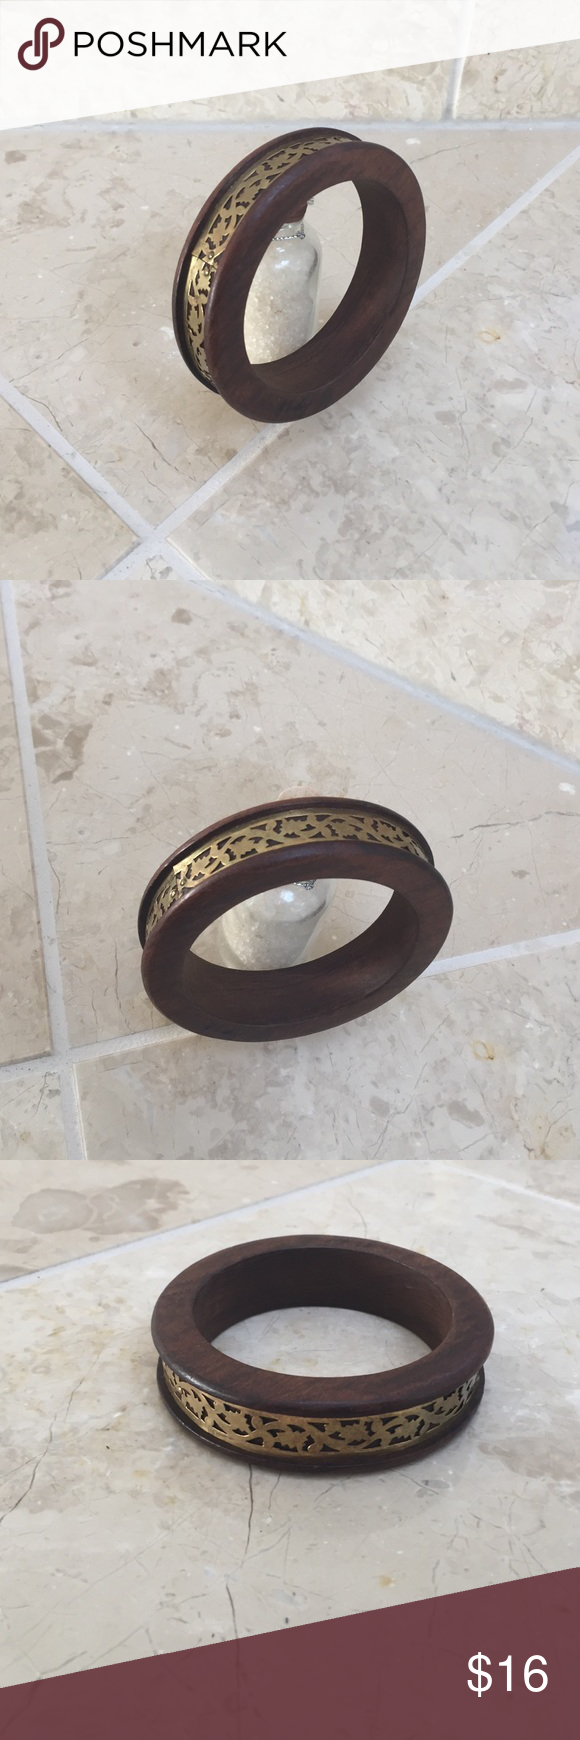 Gold and wooden bangle bracelet Exquisite wooden bangle with great detail and character. Bracelet is about 11 inches all the way around....2.5 inch diameter Jewelry Bracelets